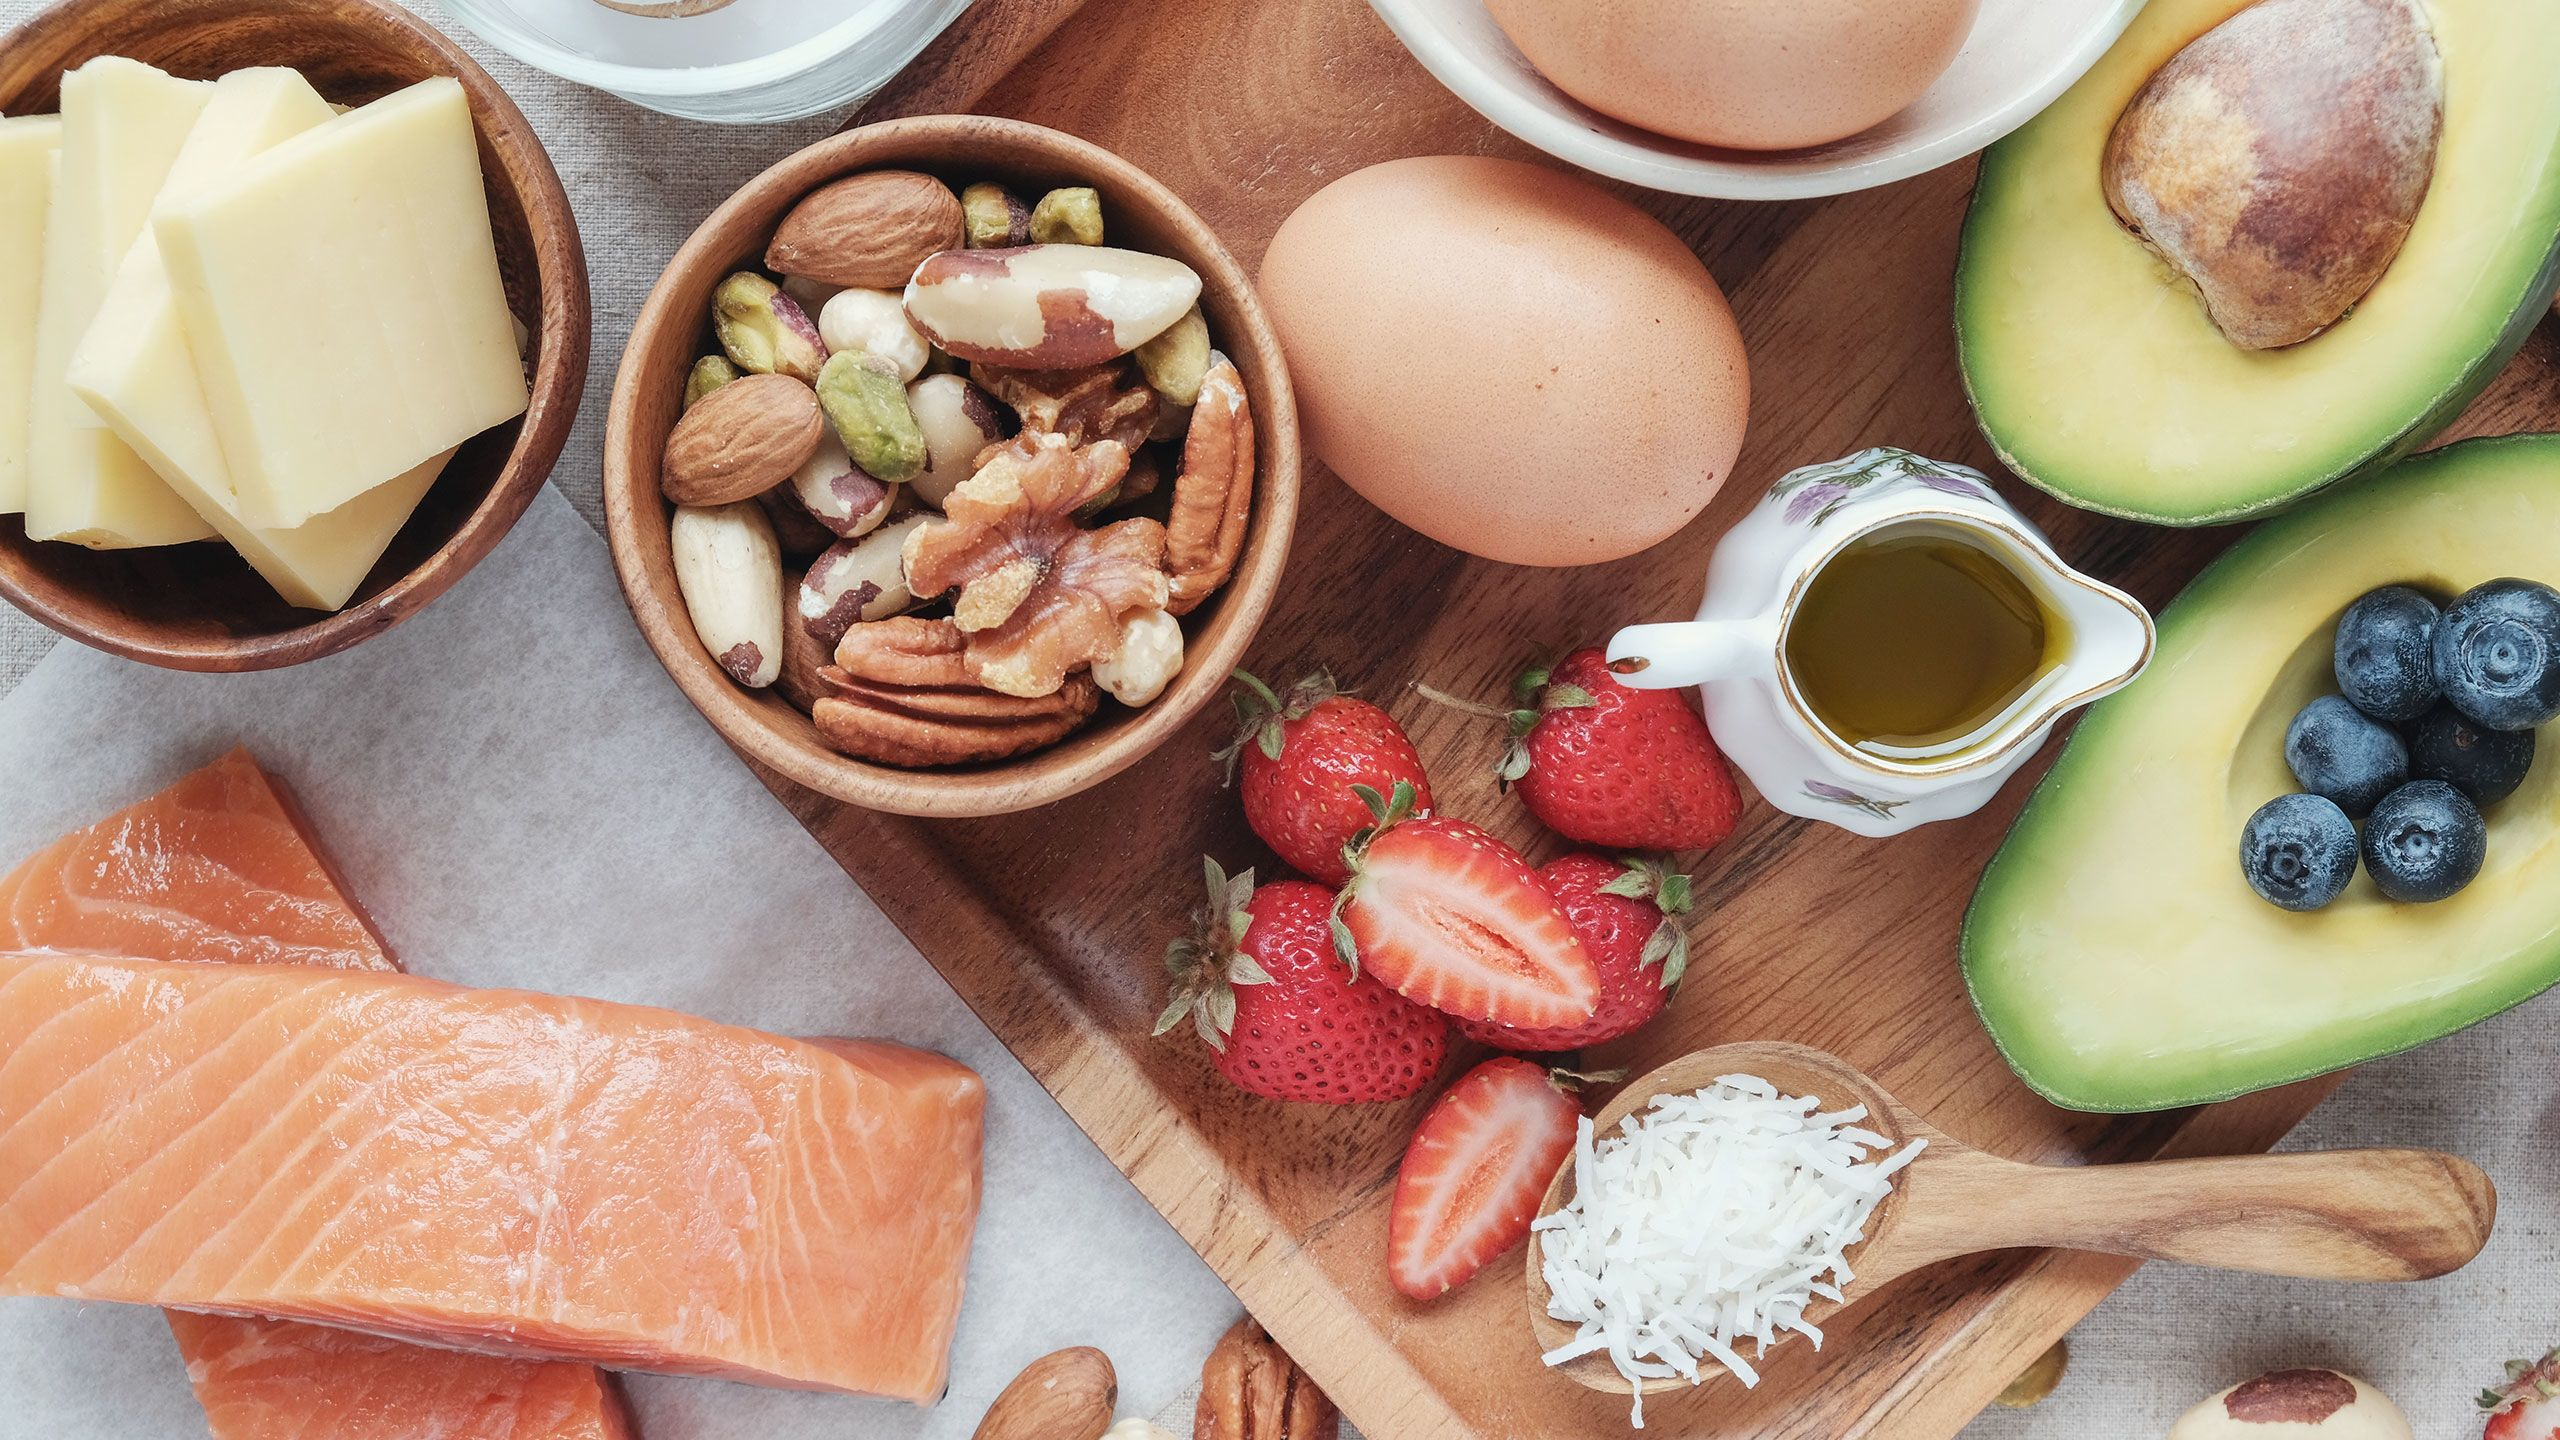 The Keto Diet Promises Big Weight Loss But Is It Safe Sharecare